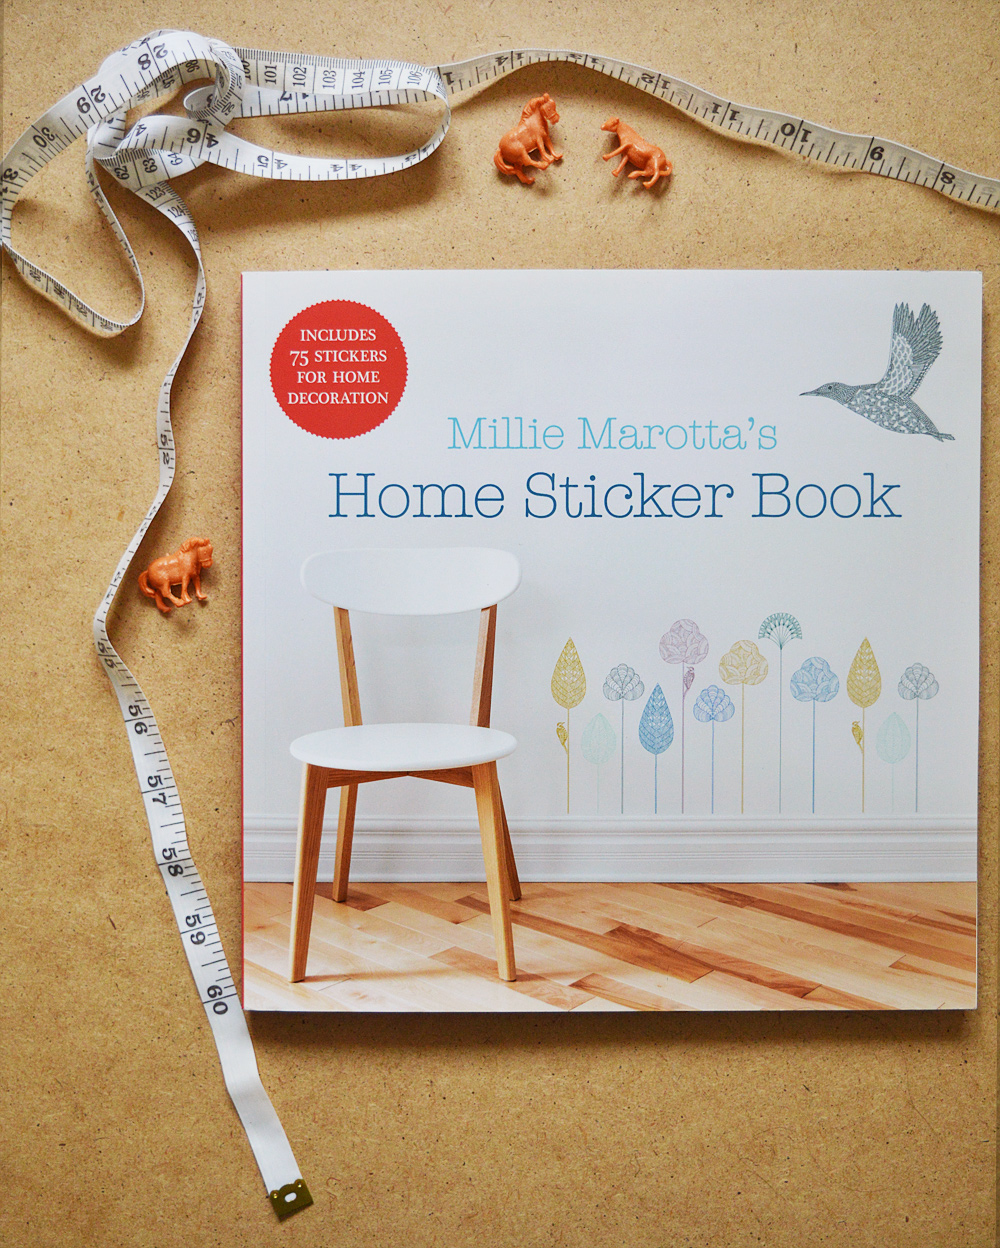 Reviewed: Millie Marotta's Home Sticker Book